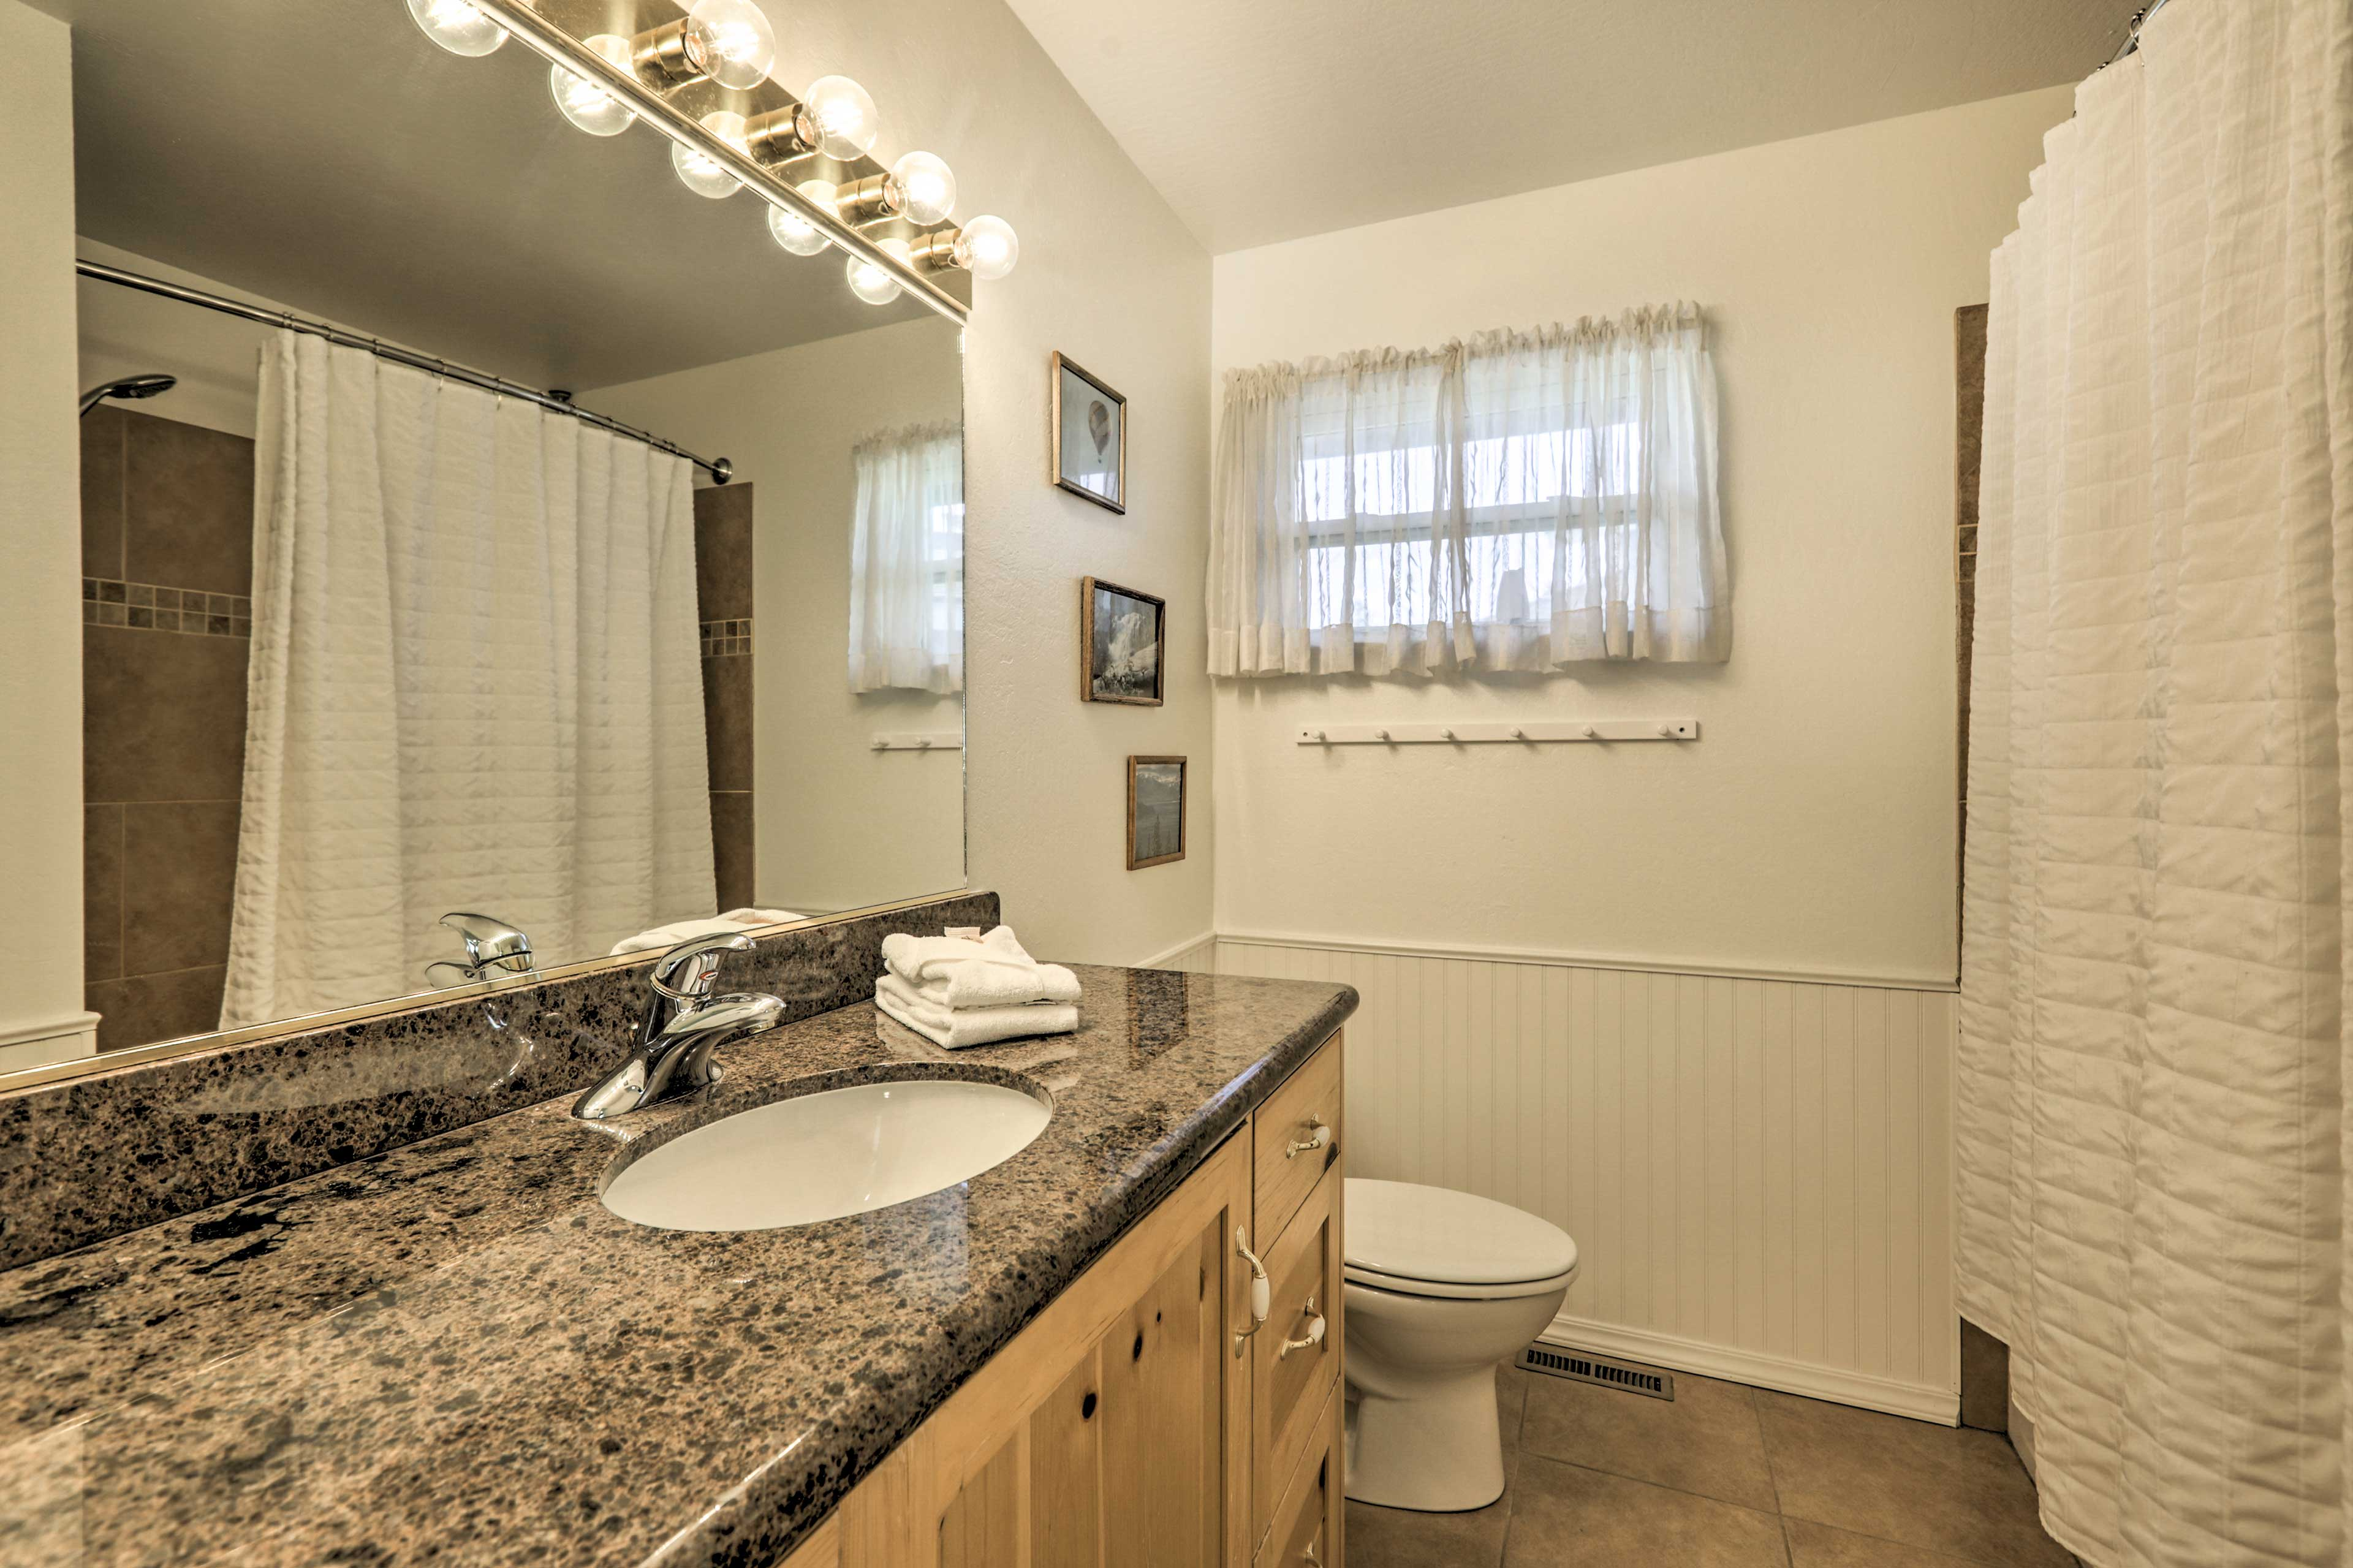 Ensure you have the best nights sleep by rinse off the day in this shower.